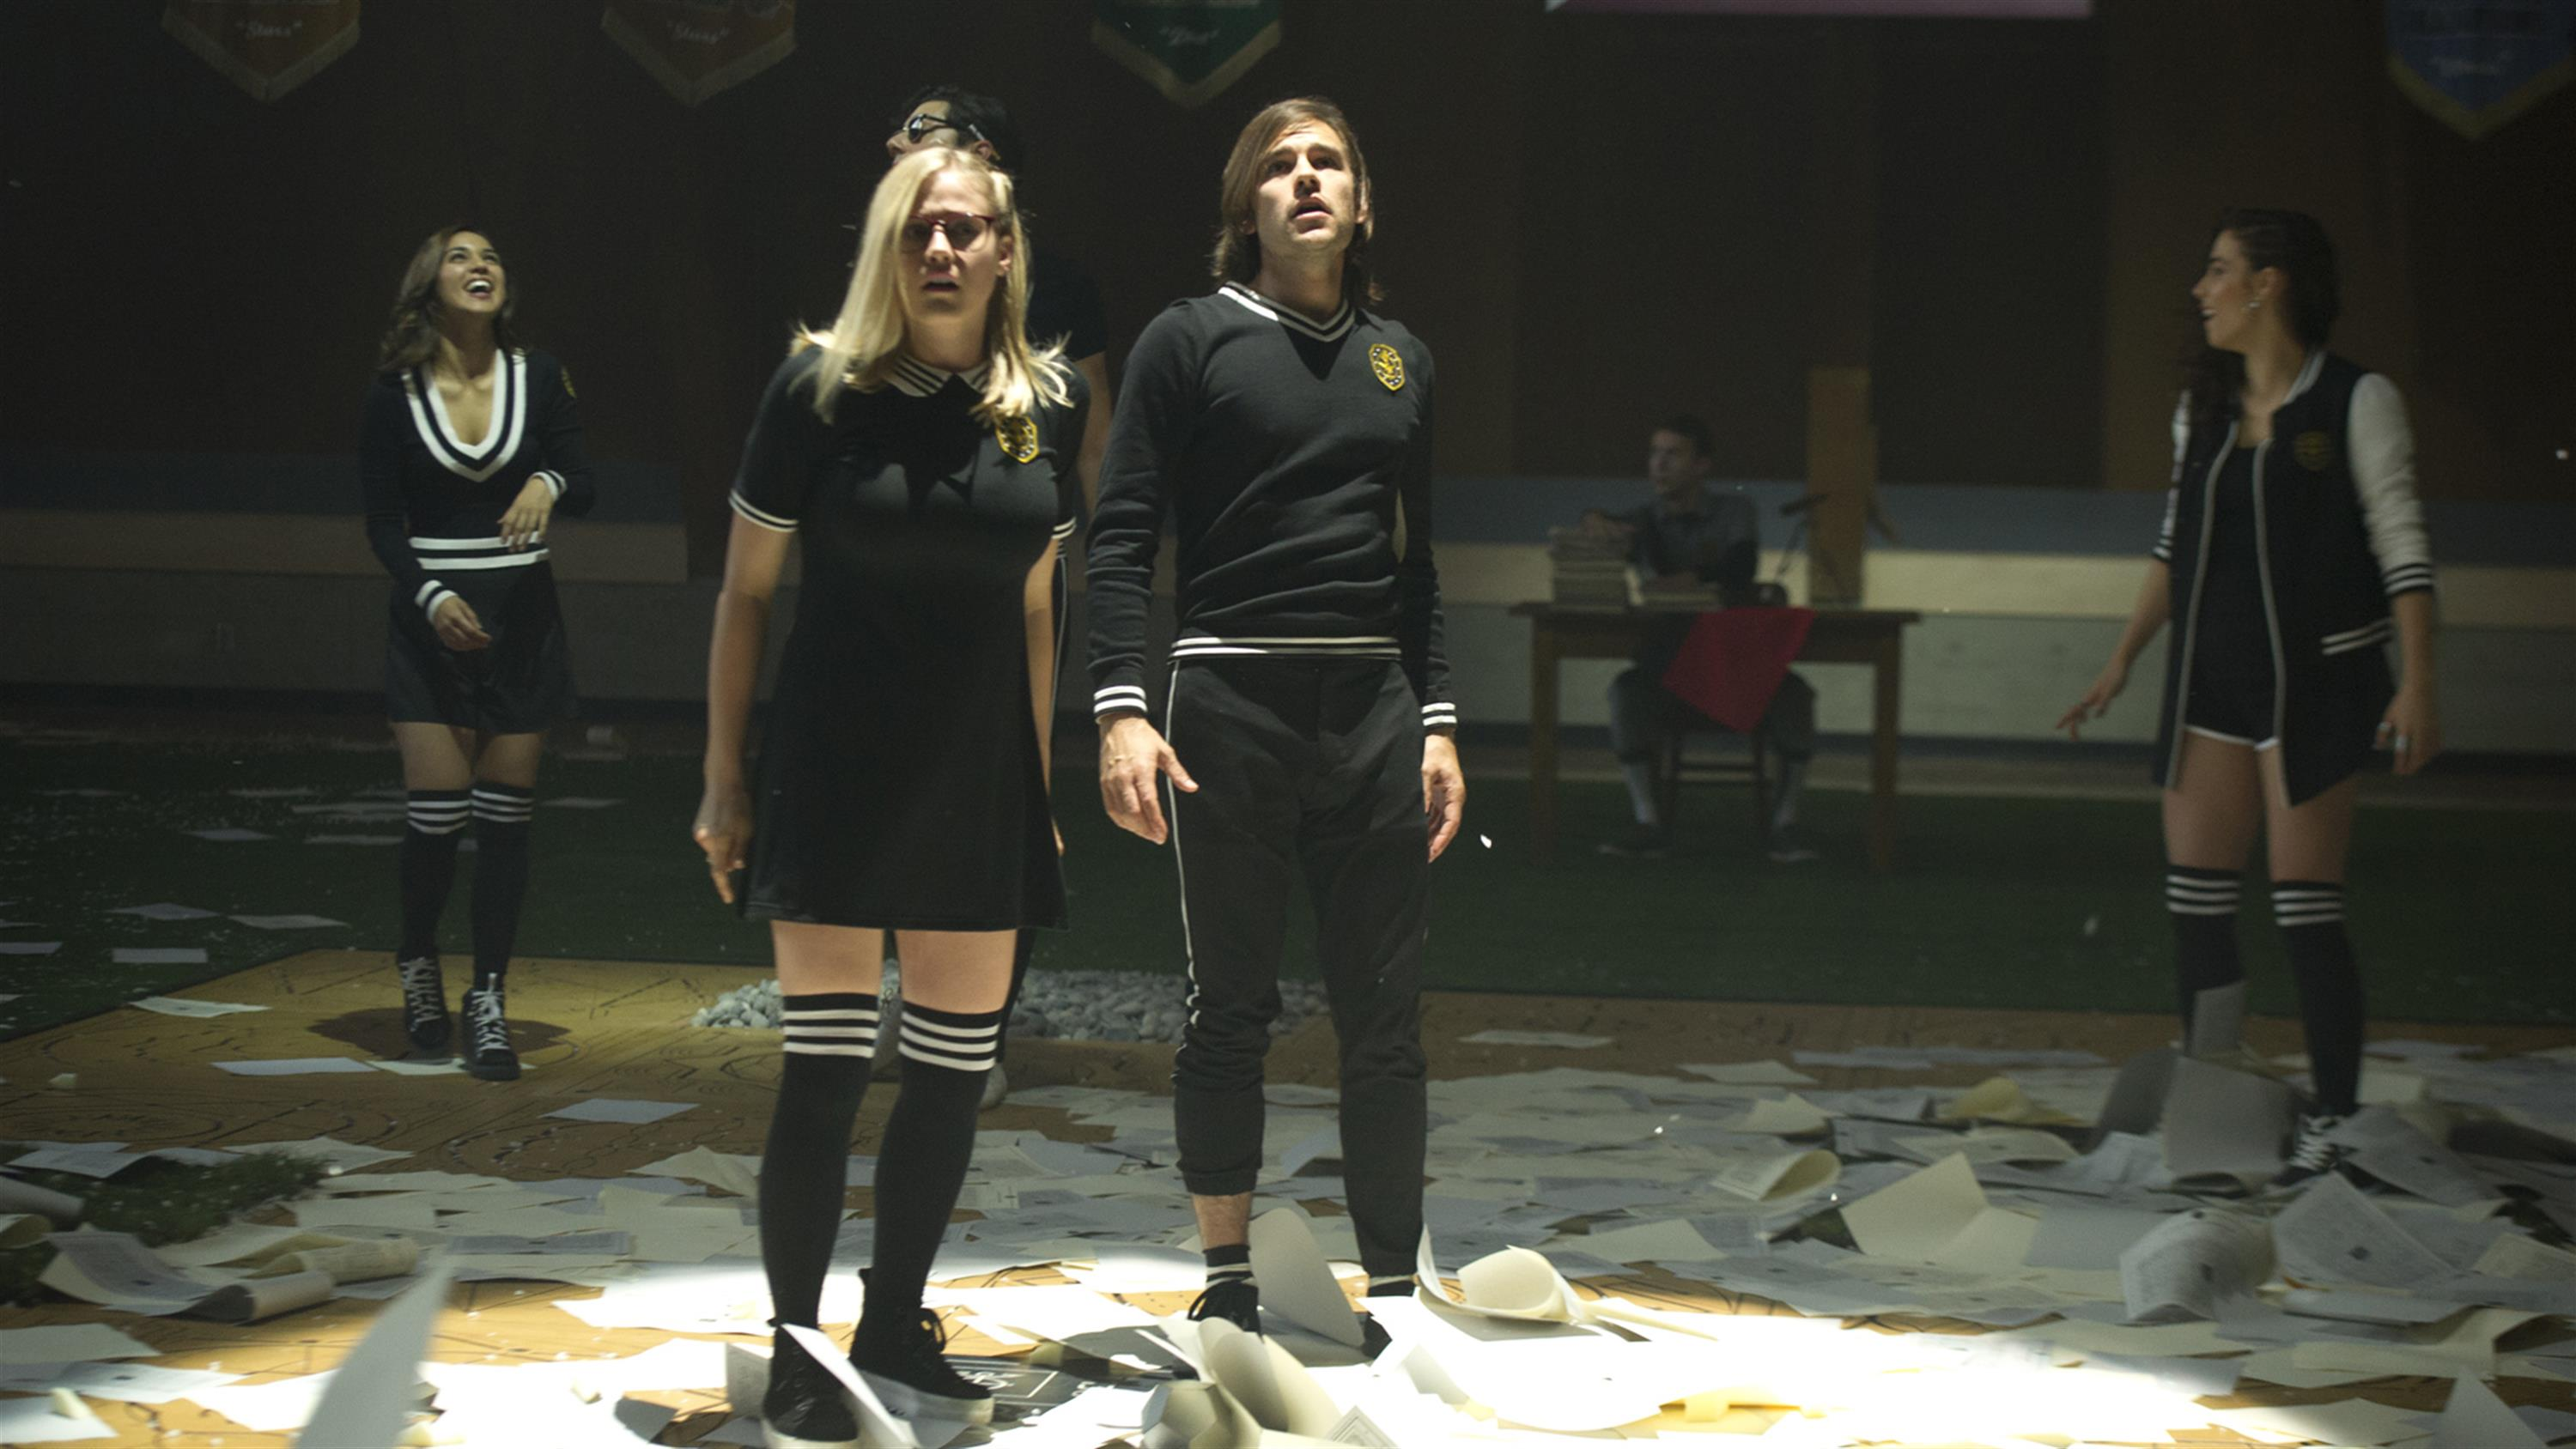 The Magicians Season 2 Promo 2